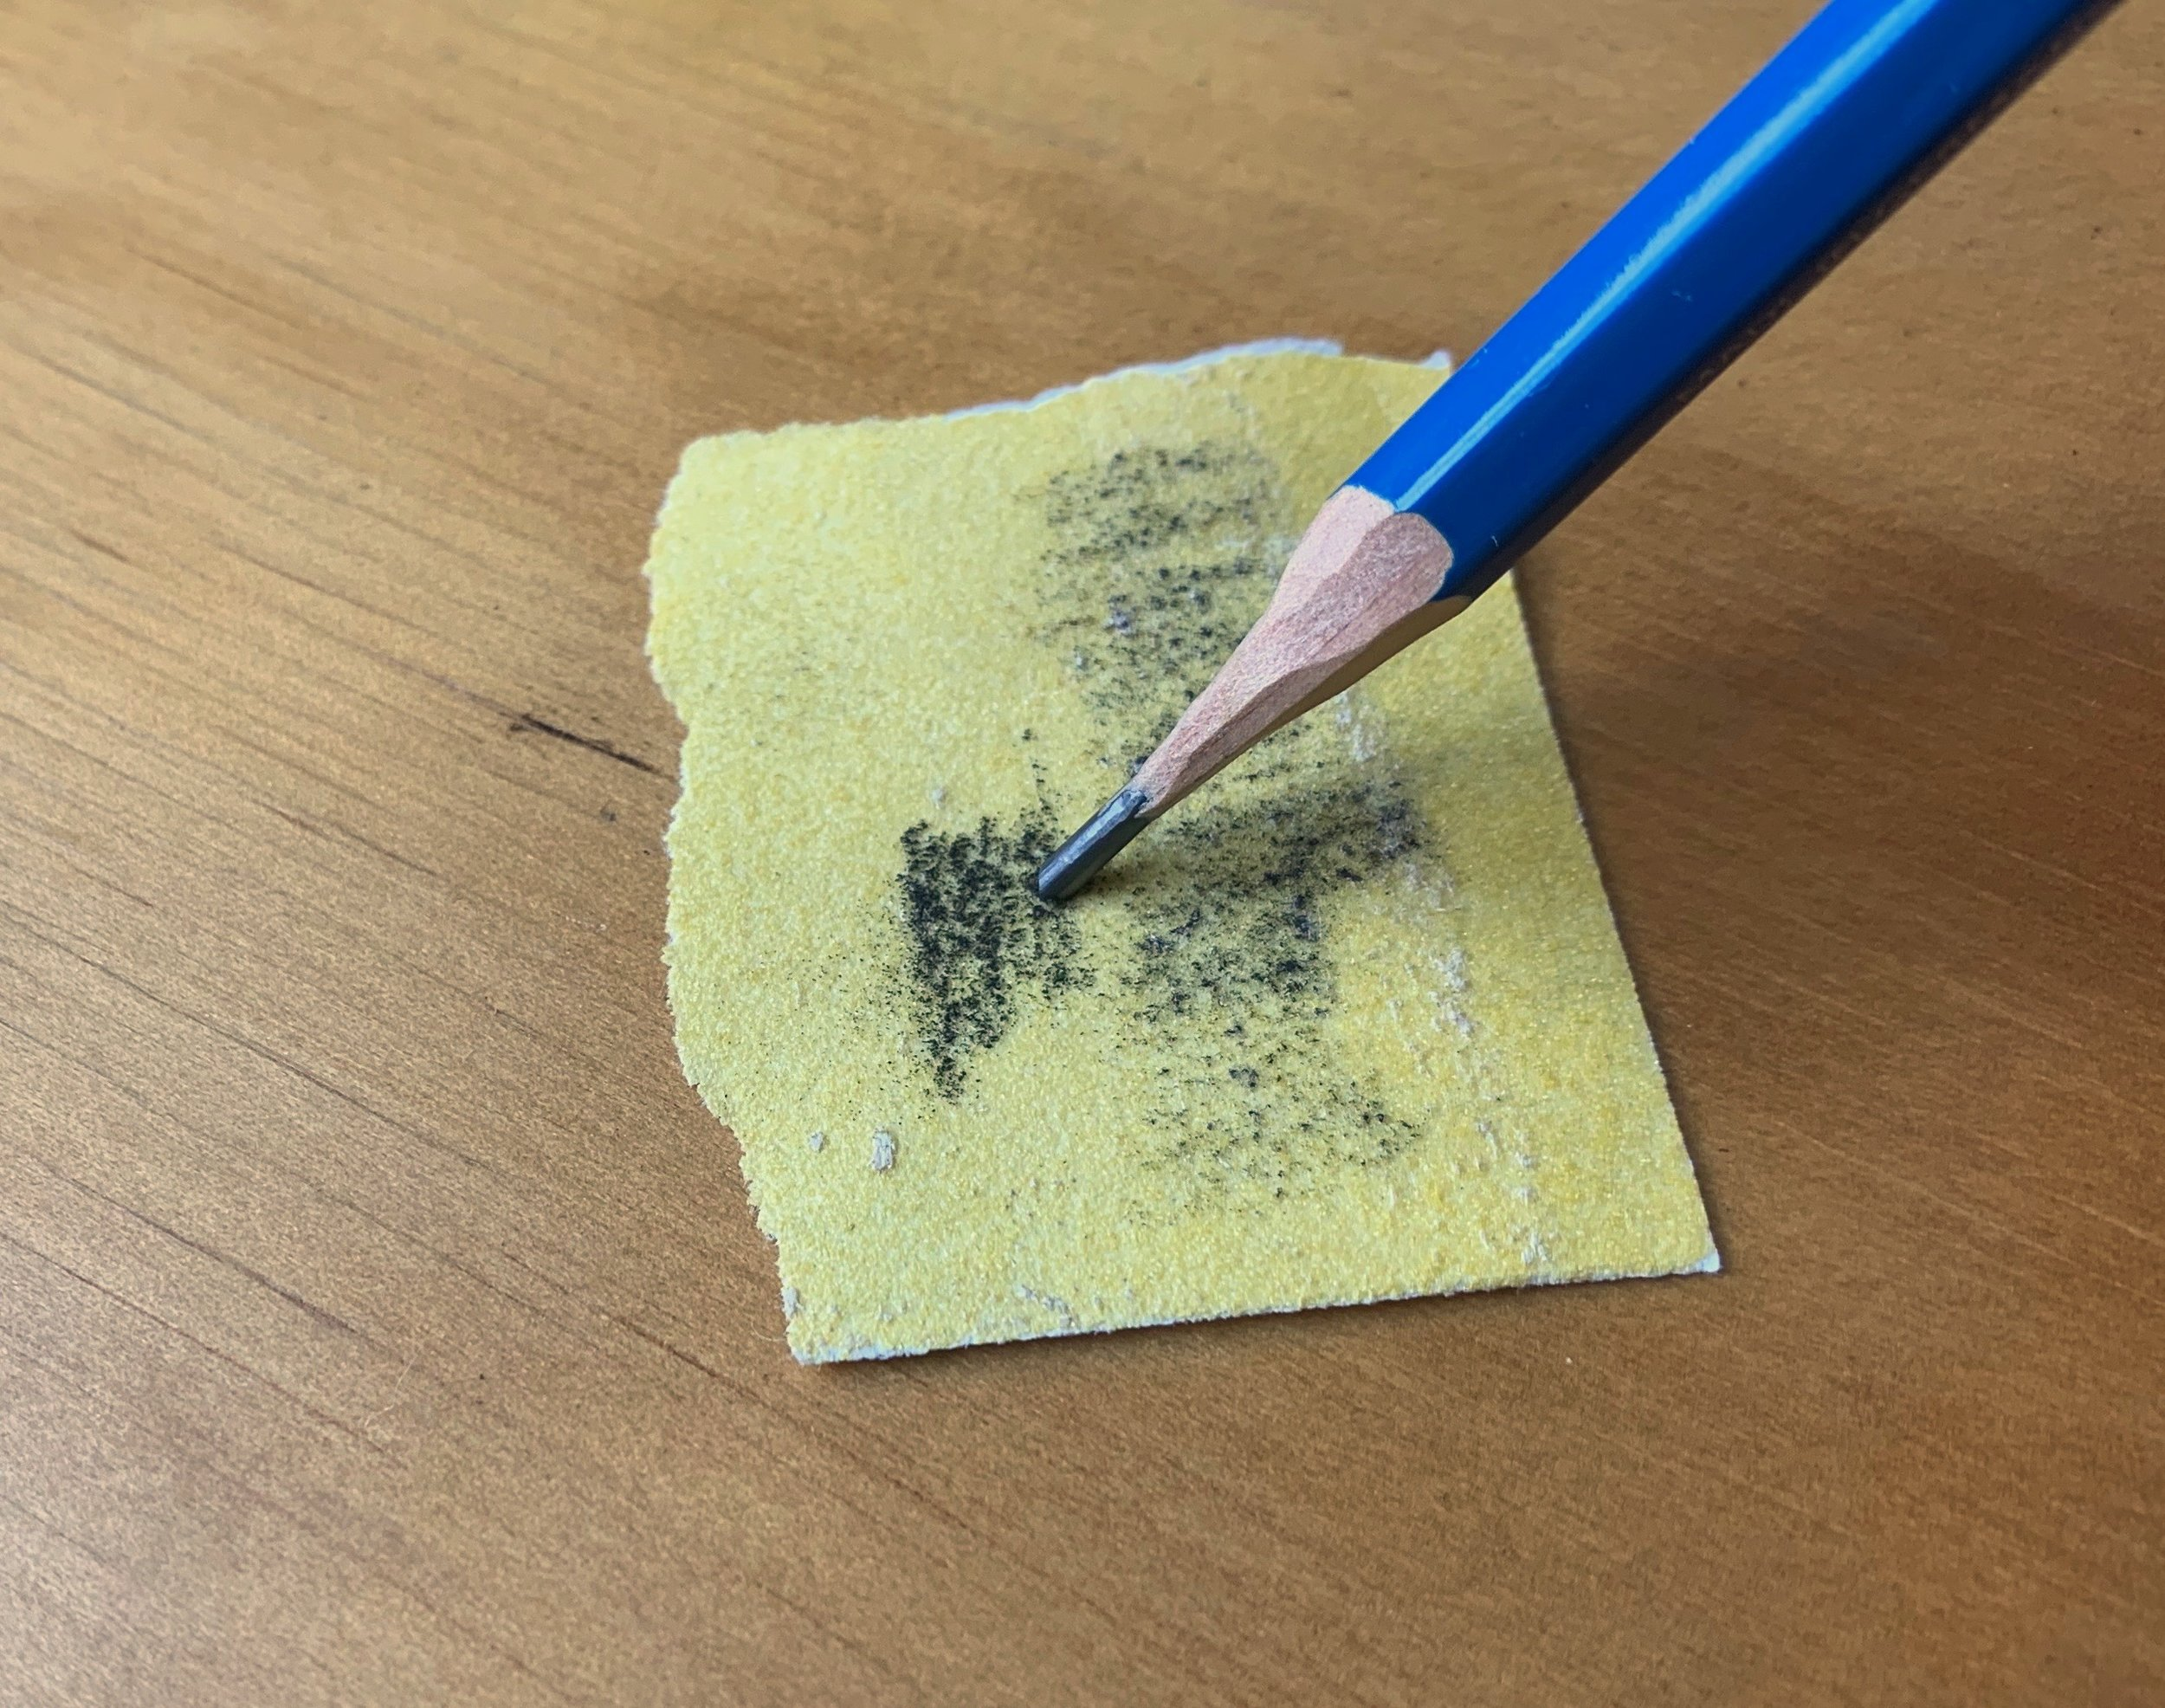 The lead of the pencil is filed on sandpaper to form a flat wedge